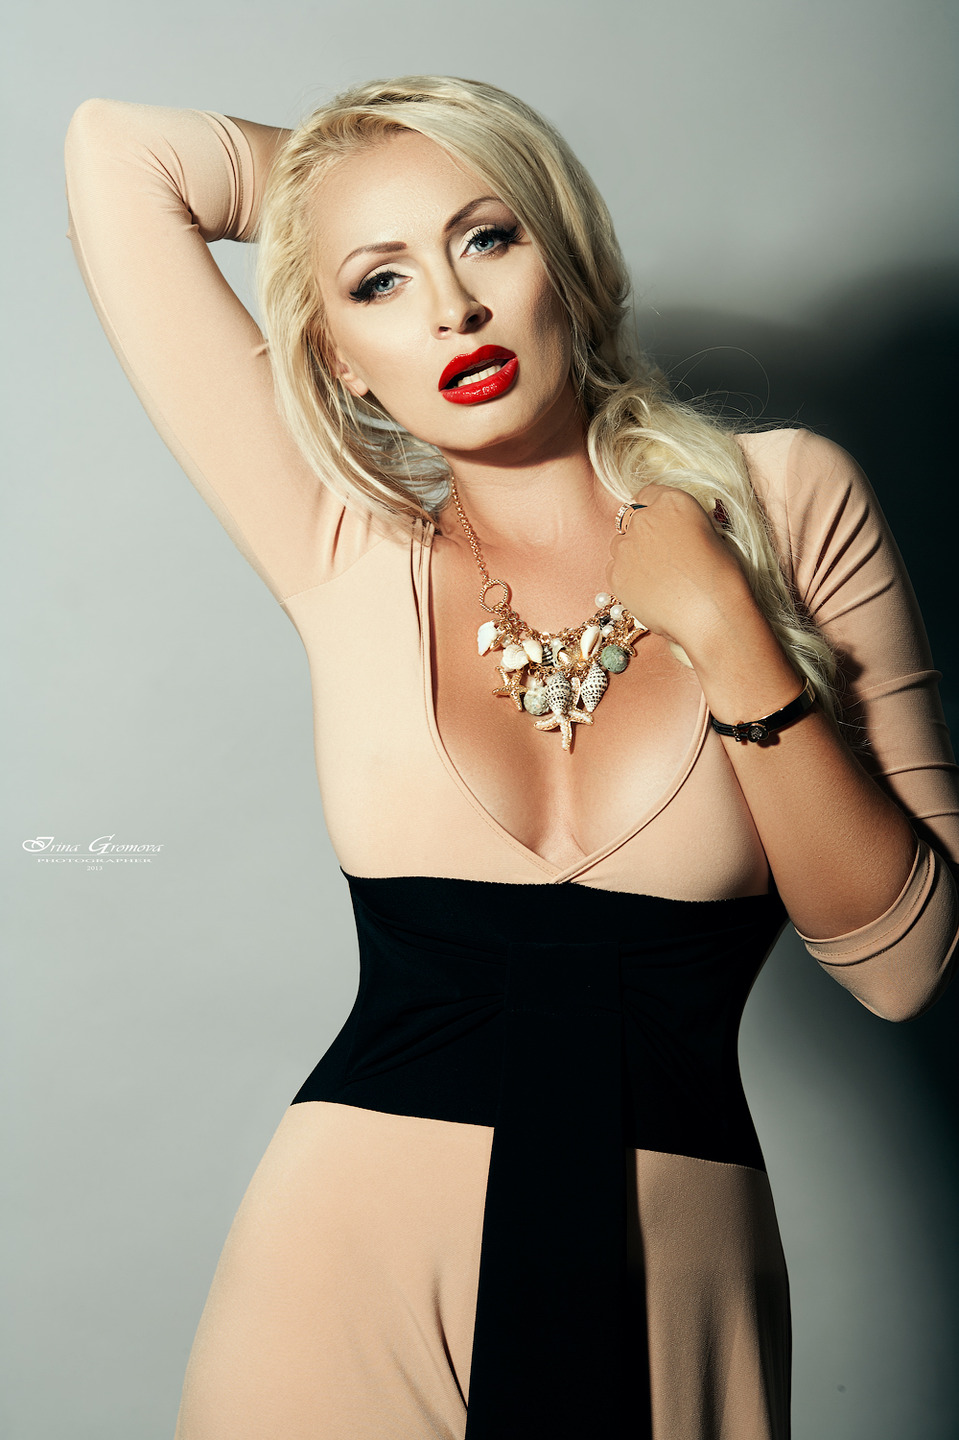 A beautiful woman with nice necklace | necklace, blond, red lipstick